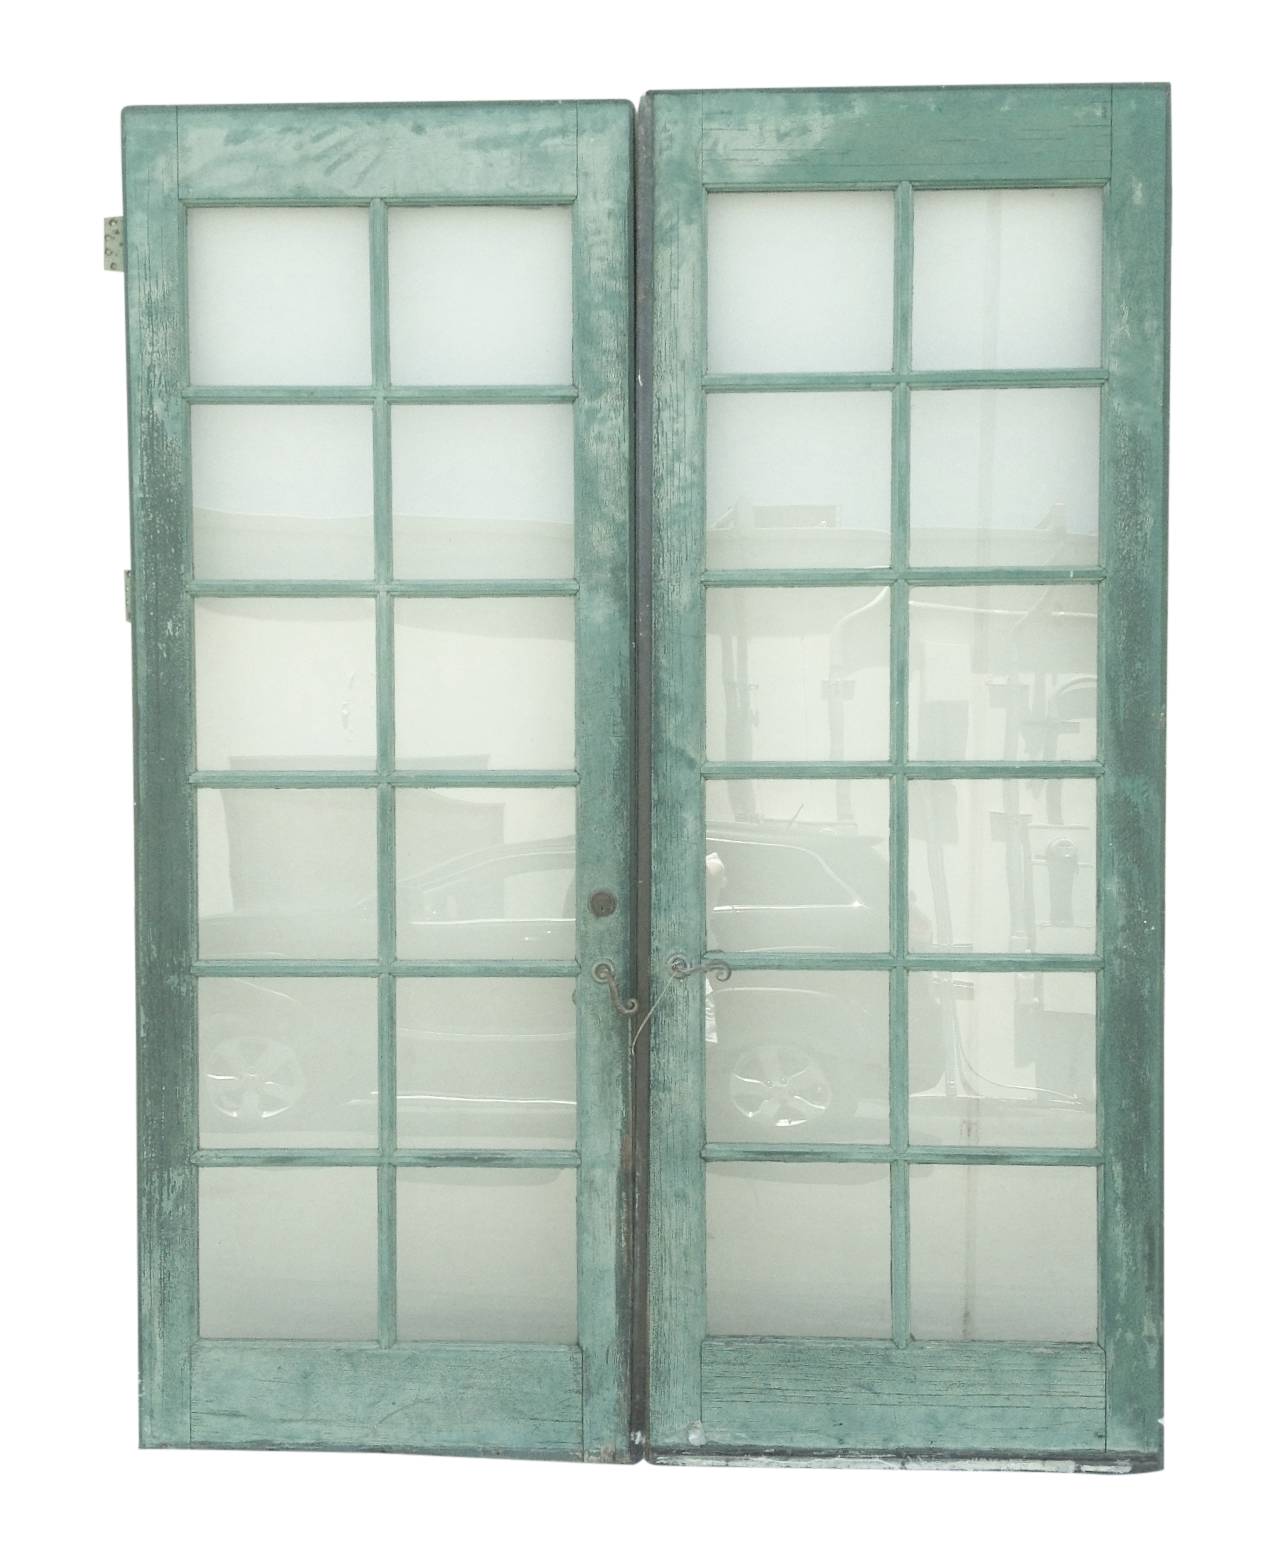 1555 #567567 Vintage Painted French Doors 12 Pane Glass Pair Chairish wallpaper 3ft French Doors 46651276